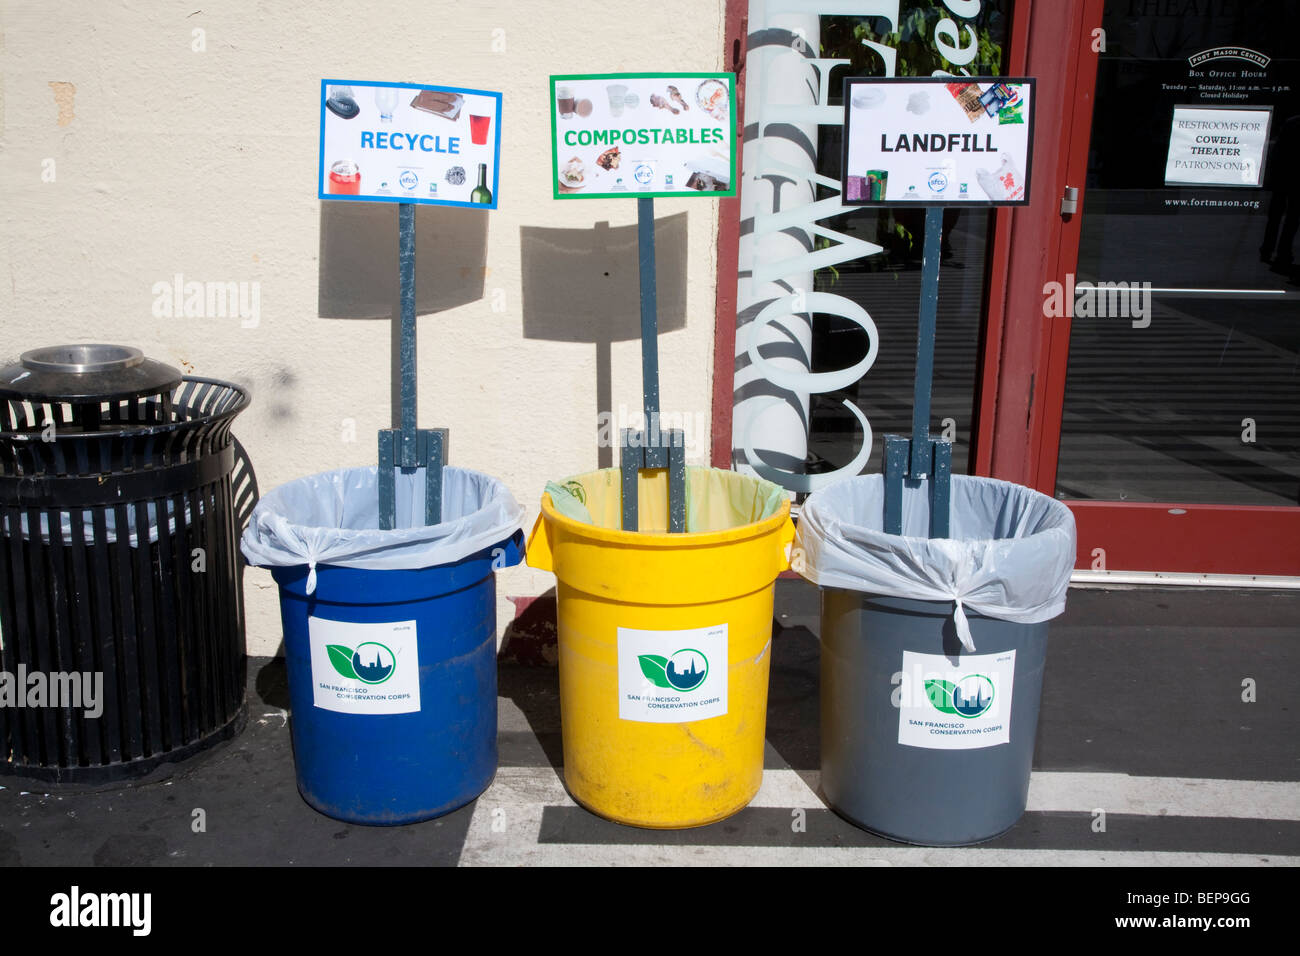 Garbage bins for recycling, composting, and landfill waste at a conference encourage people to sort their trash - Stock Image